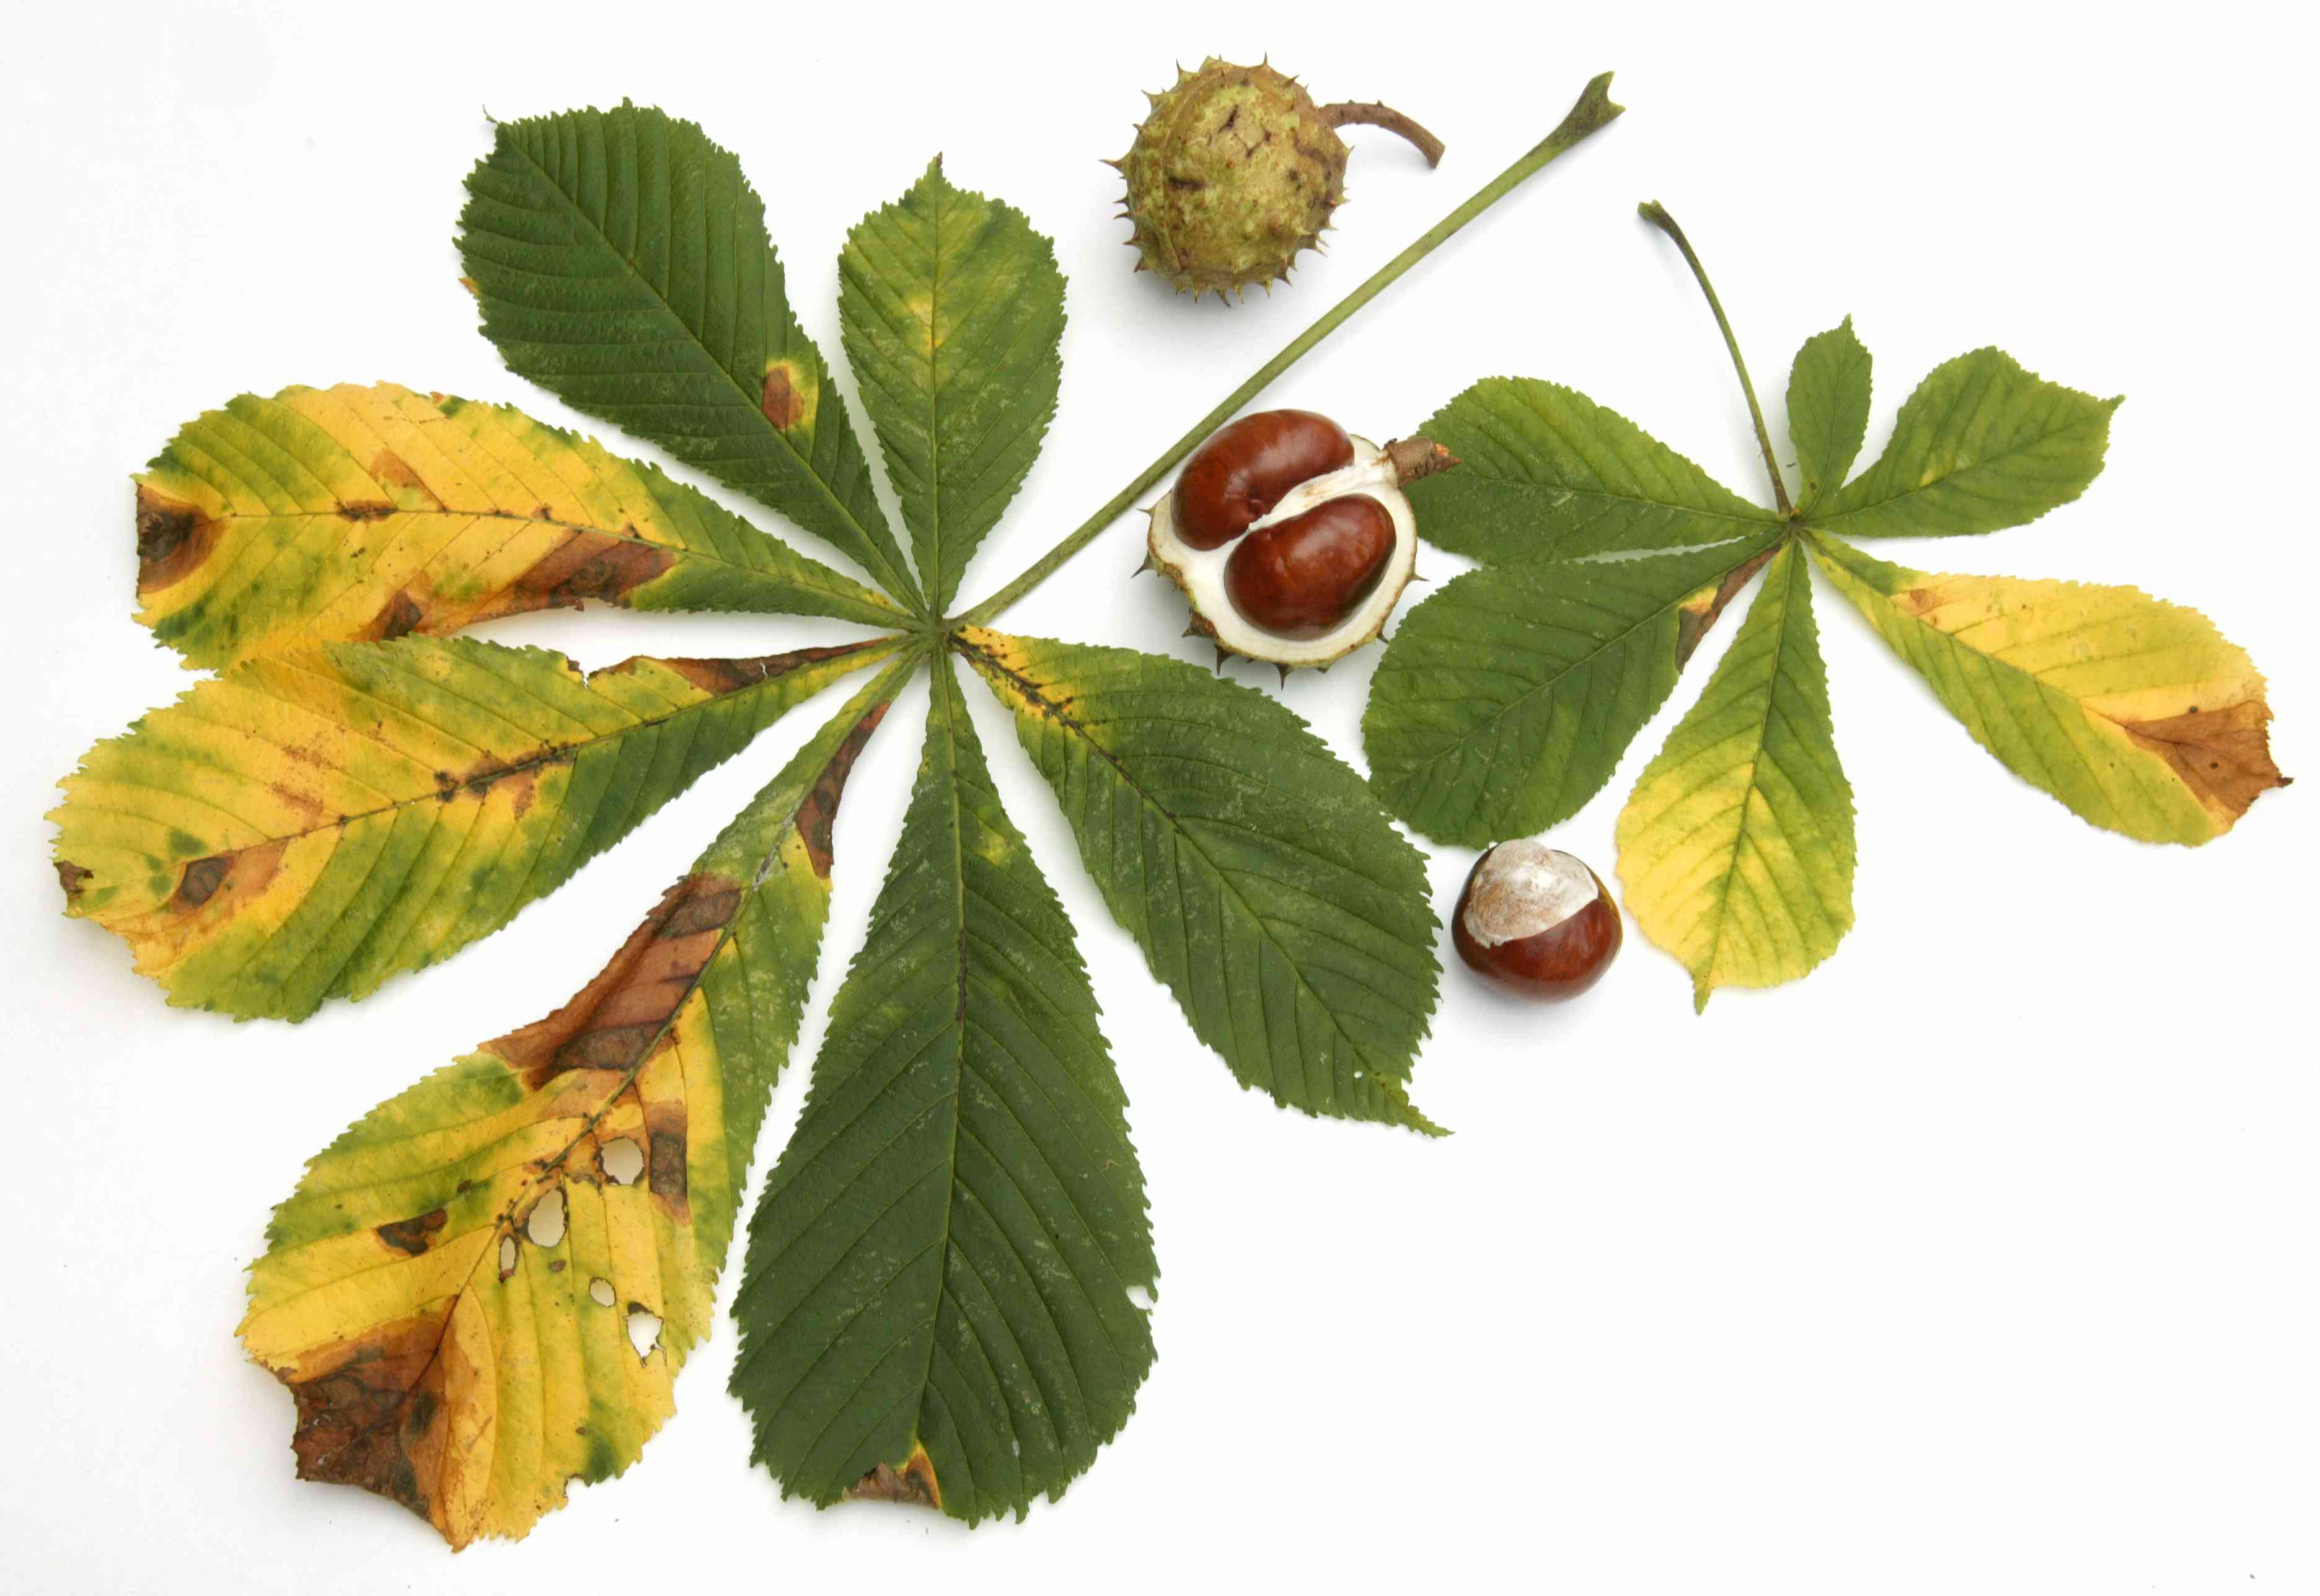 A yellowing horse chestnut tree with nuts on white background.